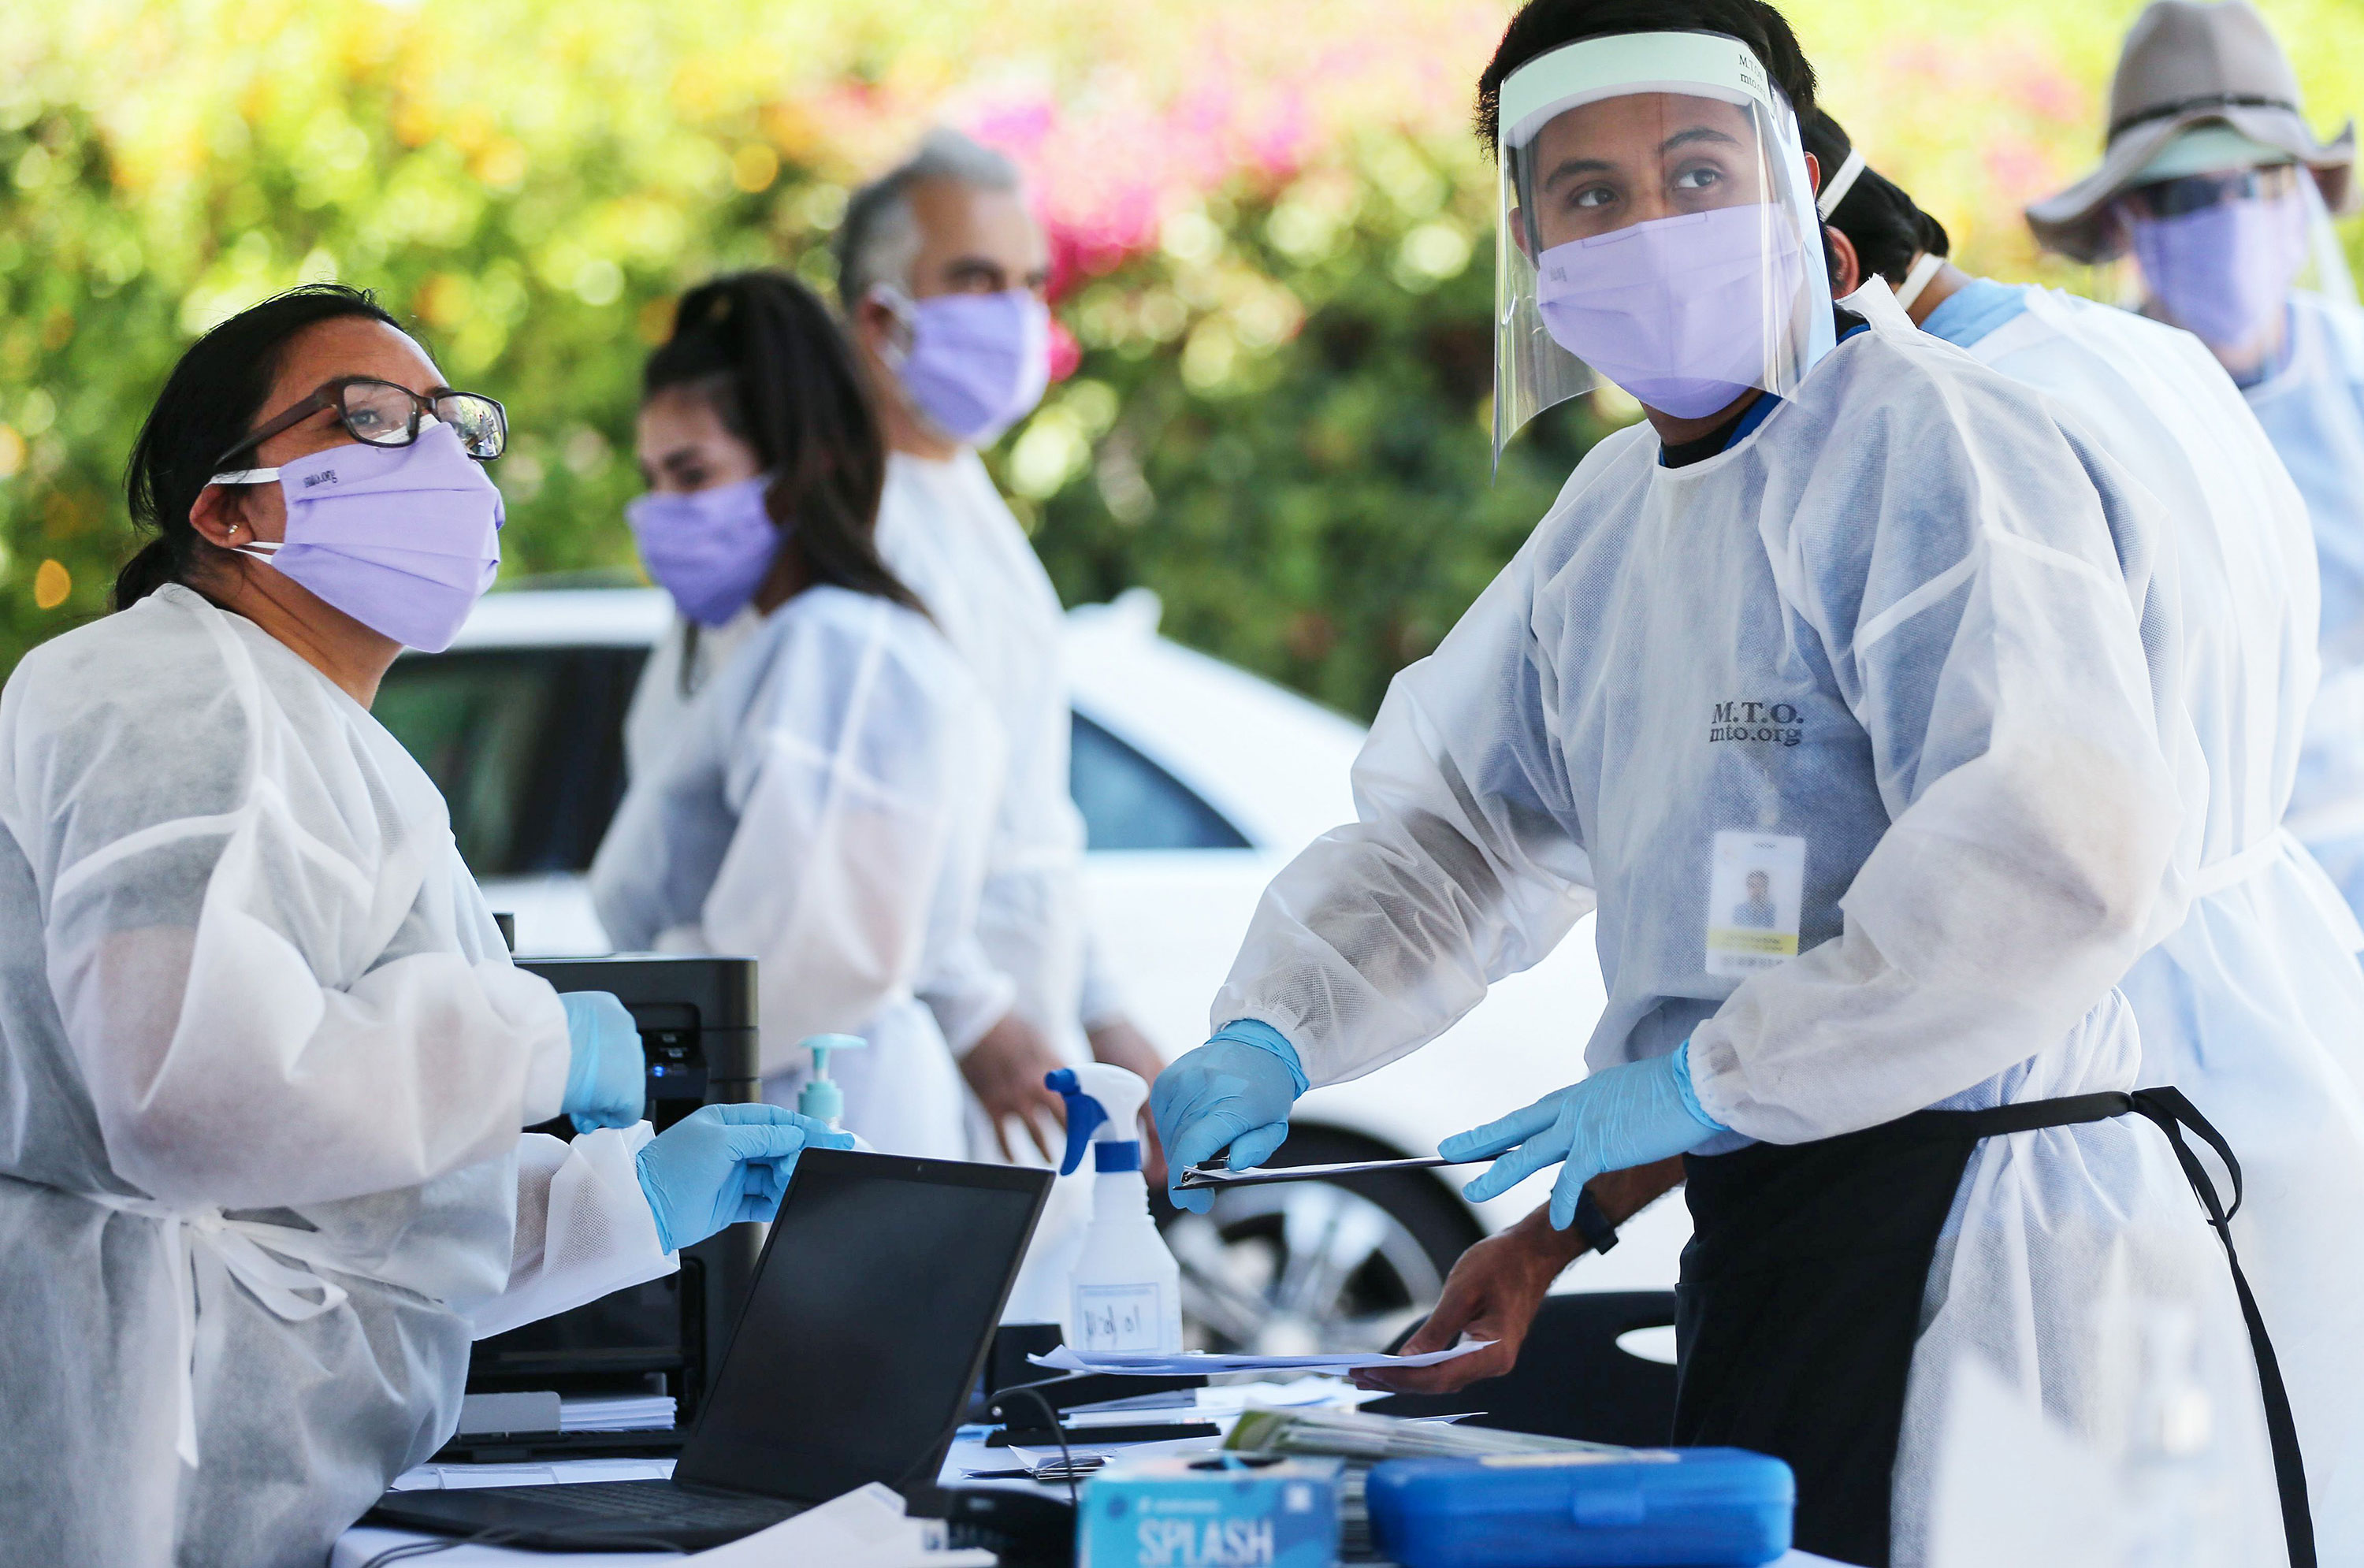 Healthcare workers facilitate Covid-19 tests on August 11 in Los Angeles, California.